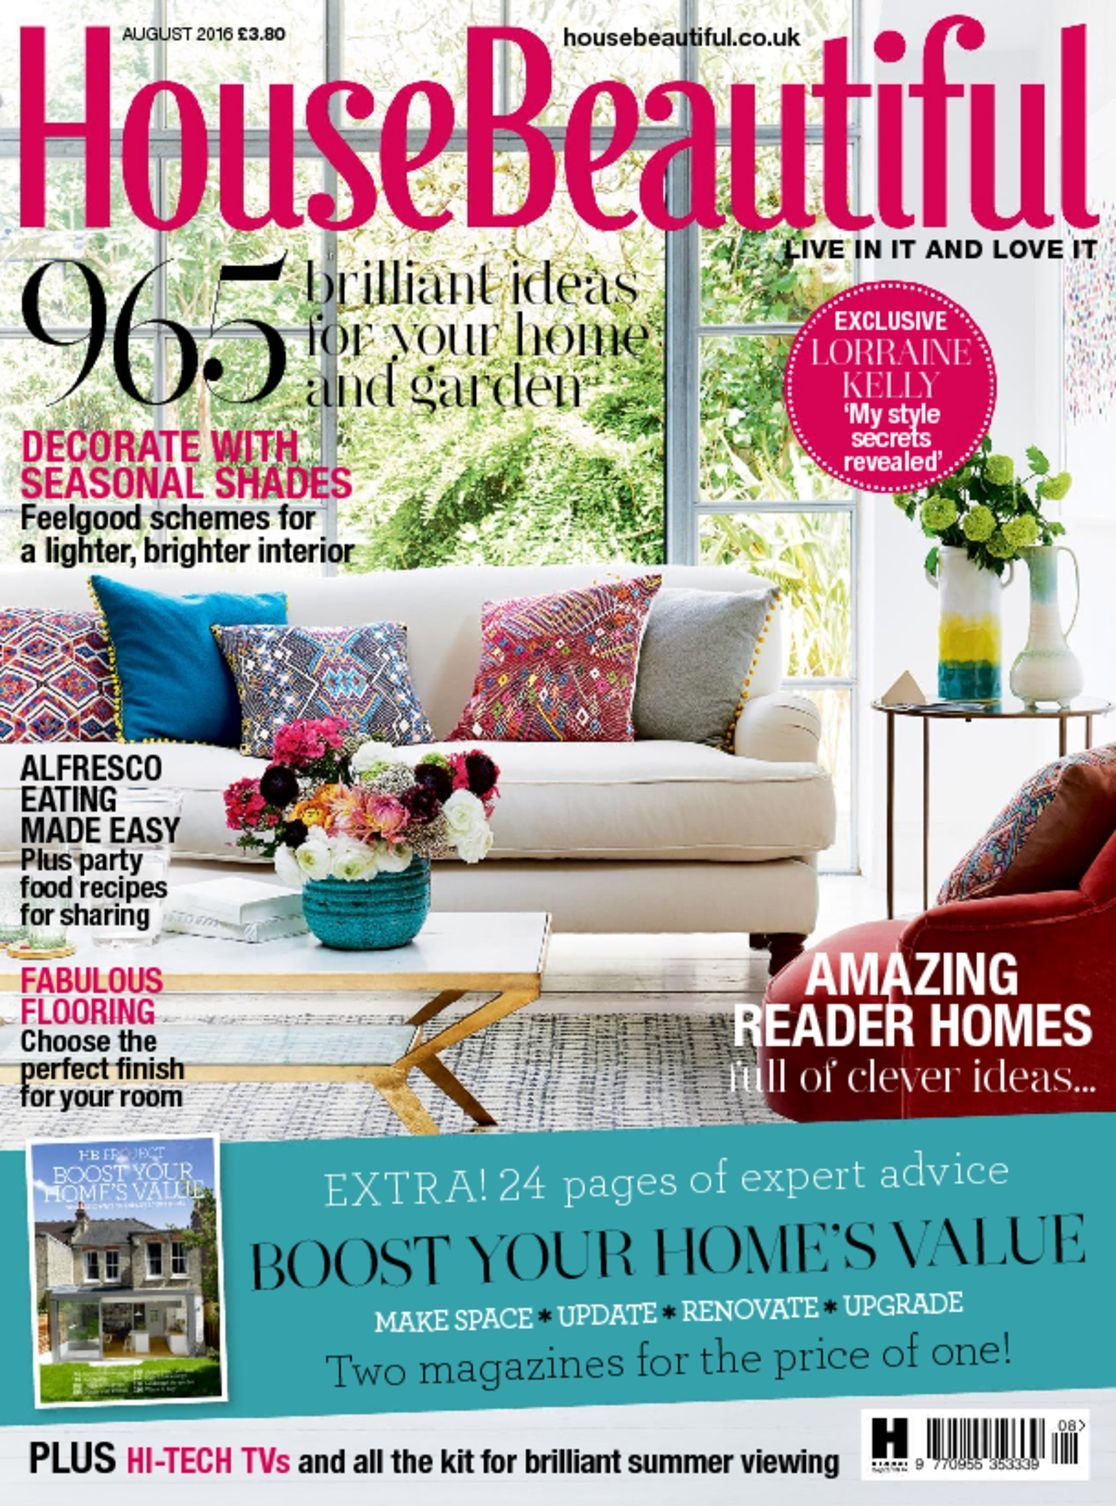 House Beautiful Uk Digital Magazine DiscountMagscom